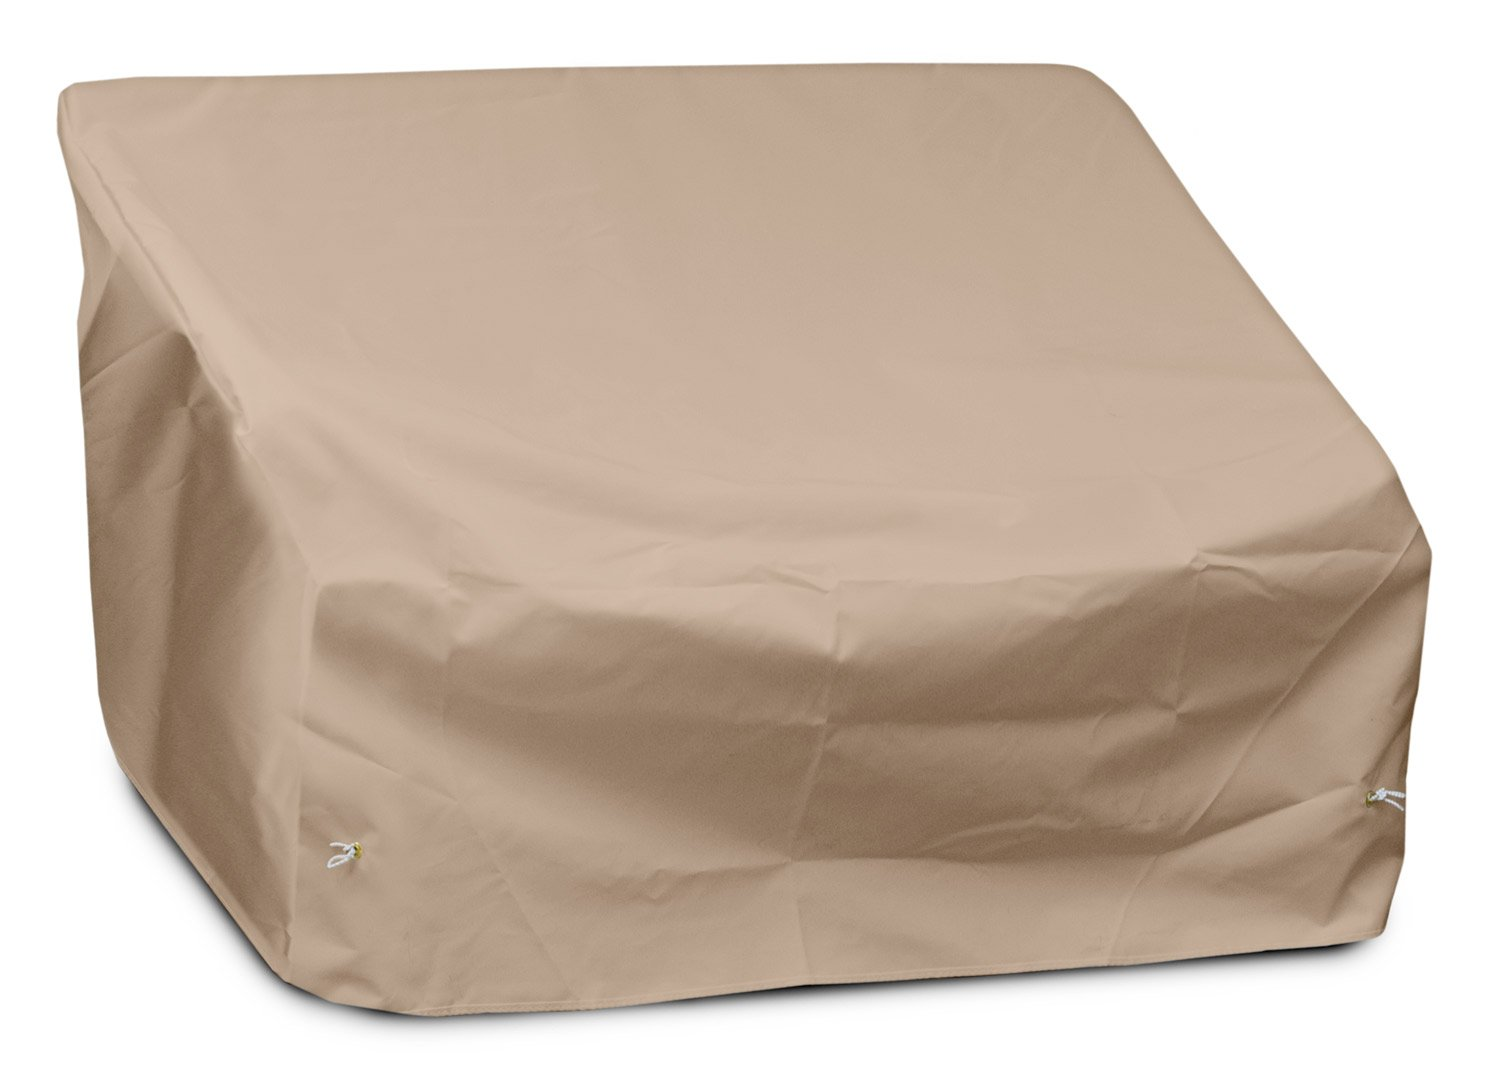 KoverRoos Weathermax 42350 2-Seat/Loveseat Cover, 54-Inch Width by 38-Inch Diameter by 31-Inch Height, Toast